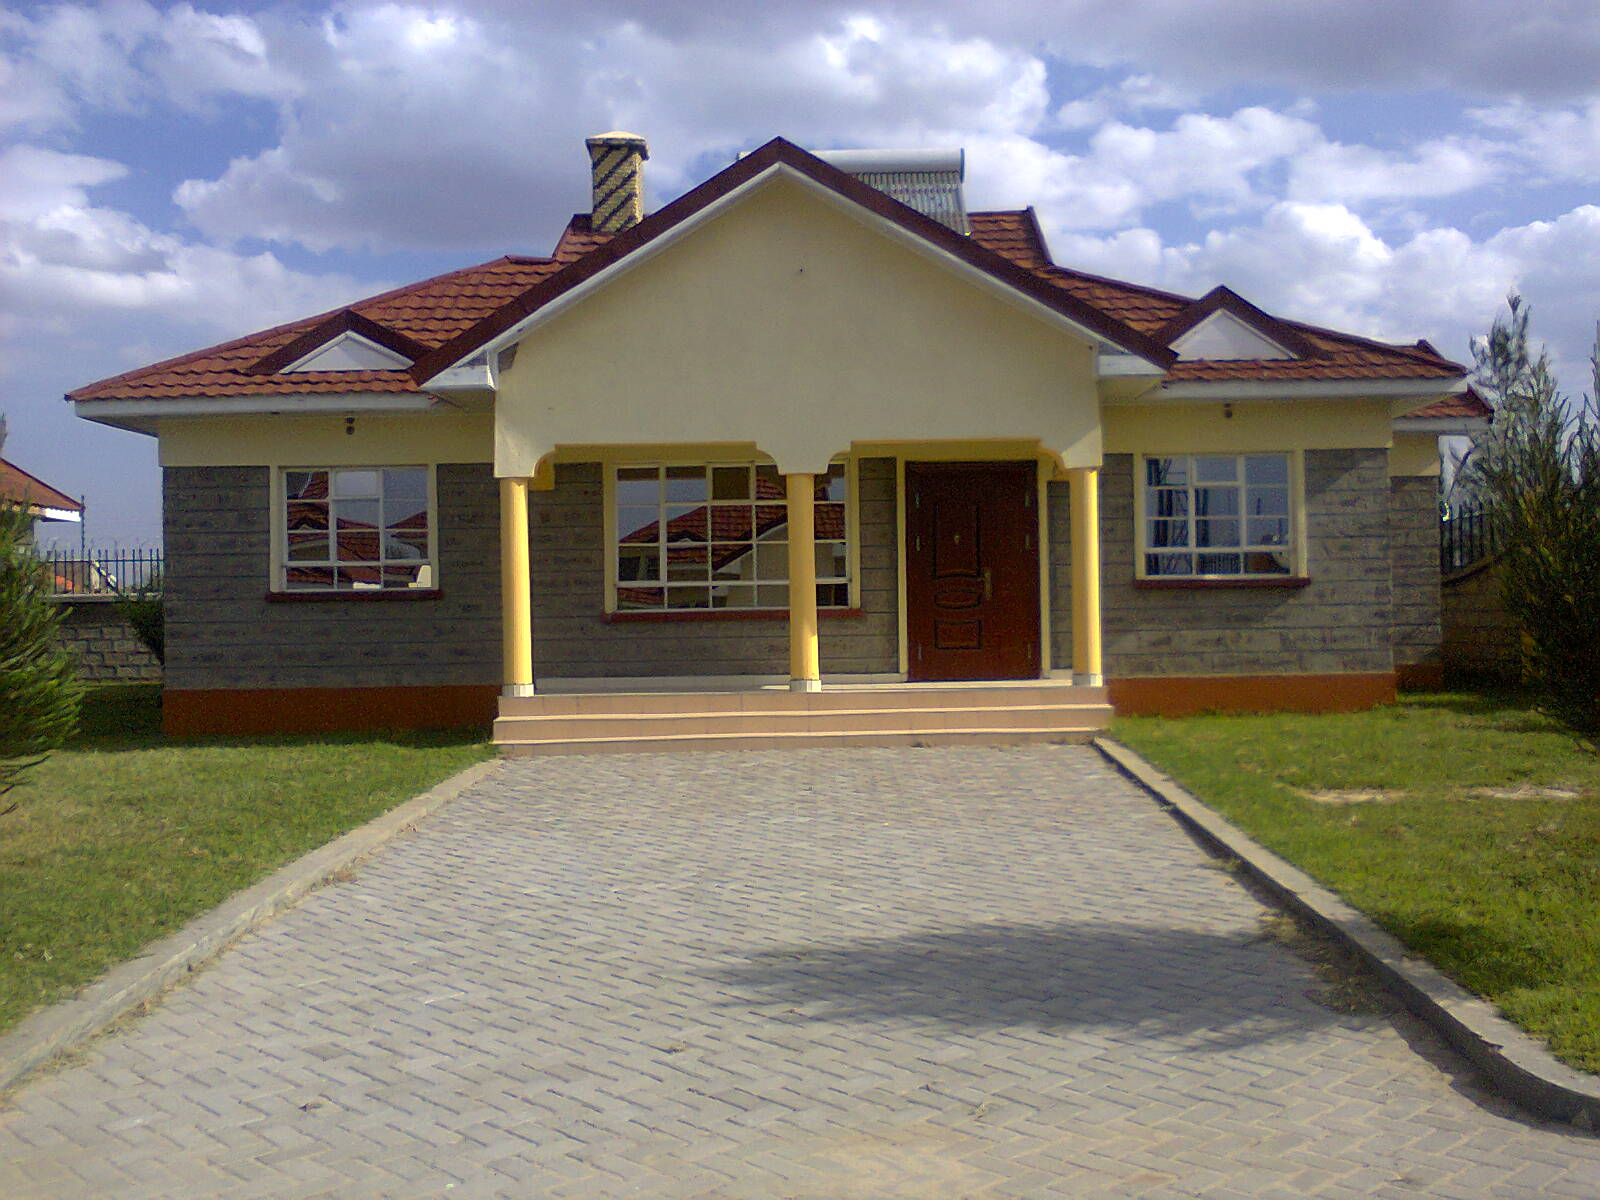 Pictures of bungalow houses in kenya for House plans with pictures in kenya